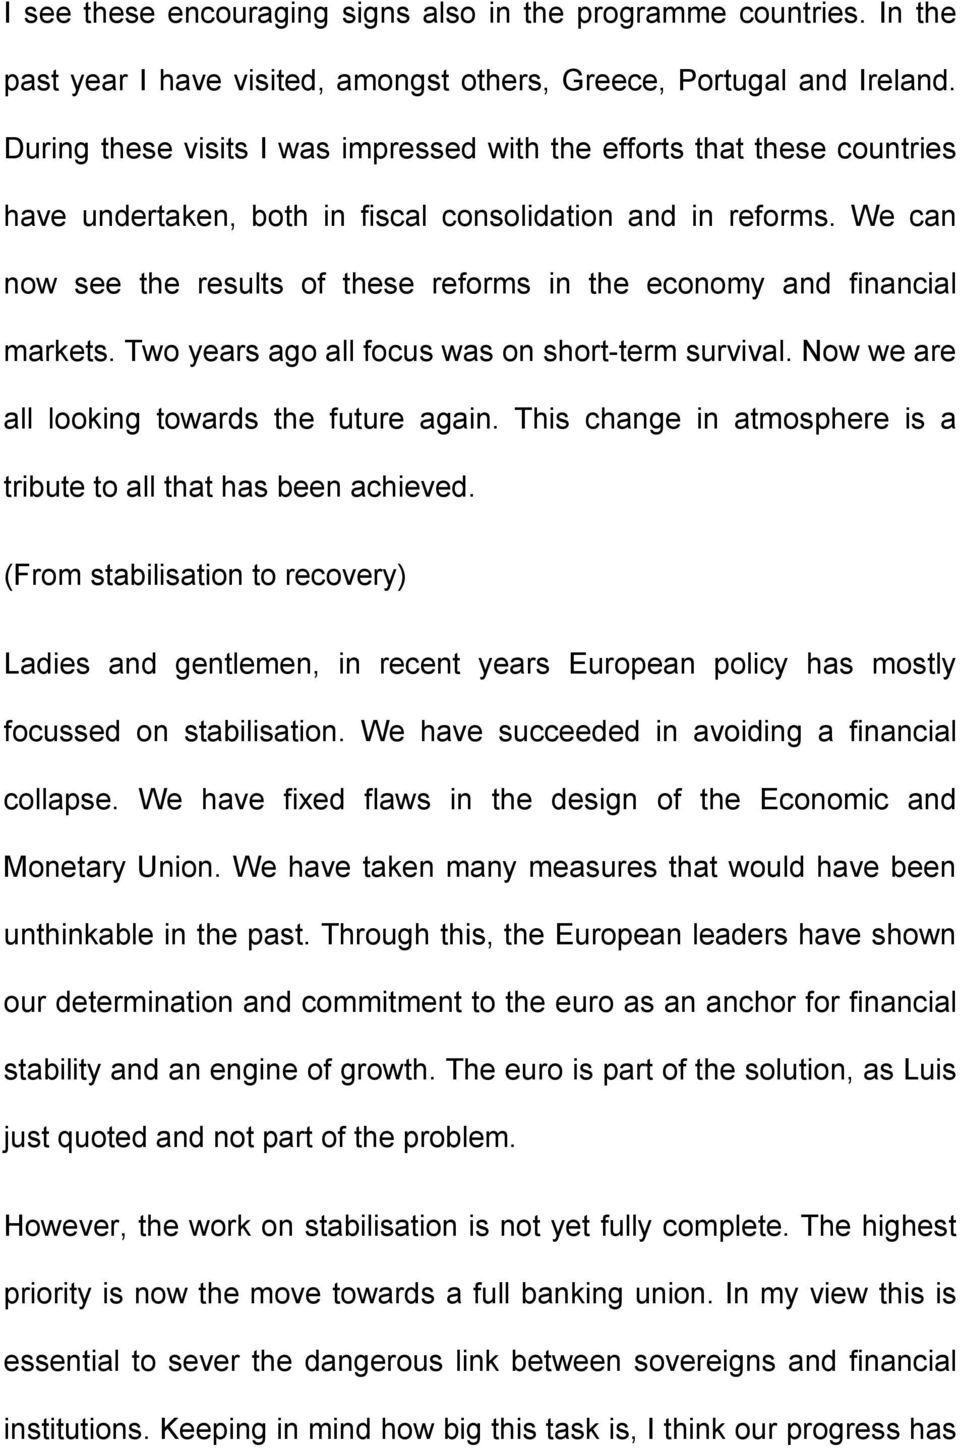 We can now see the results of these reforms in the economy and financial markets. Two years ago all focus was on short-term survival. Now we are all looking towards the future again.